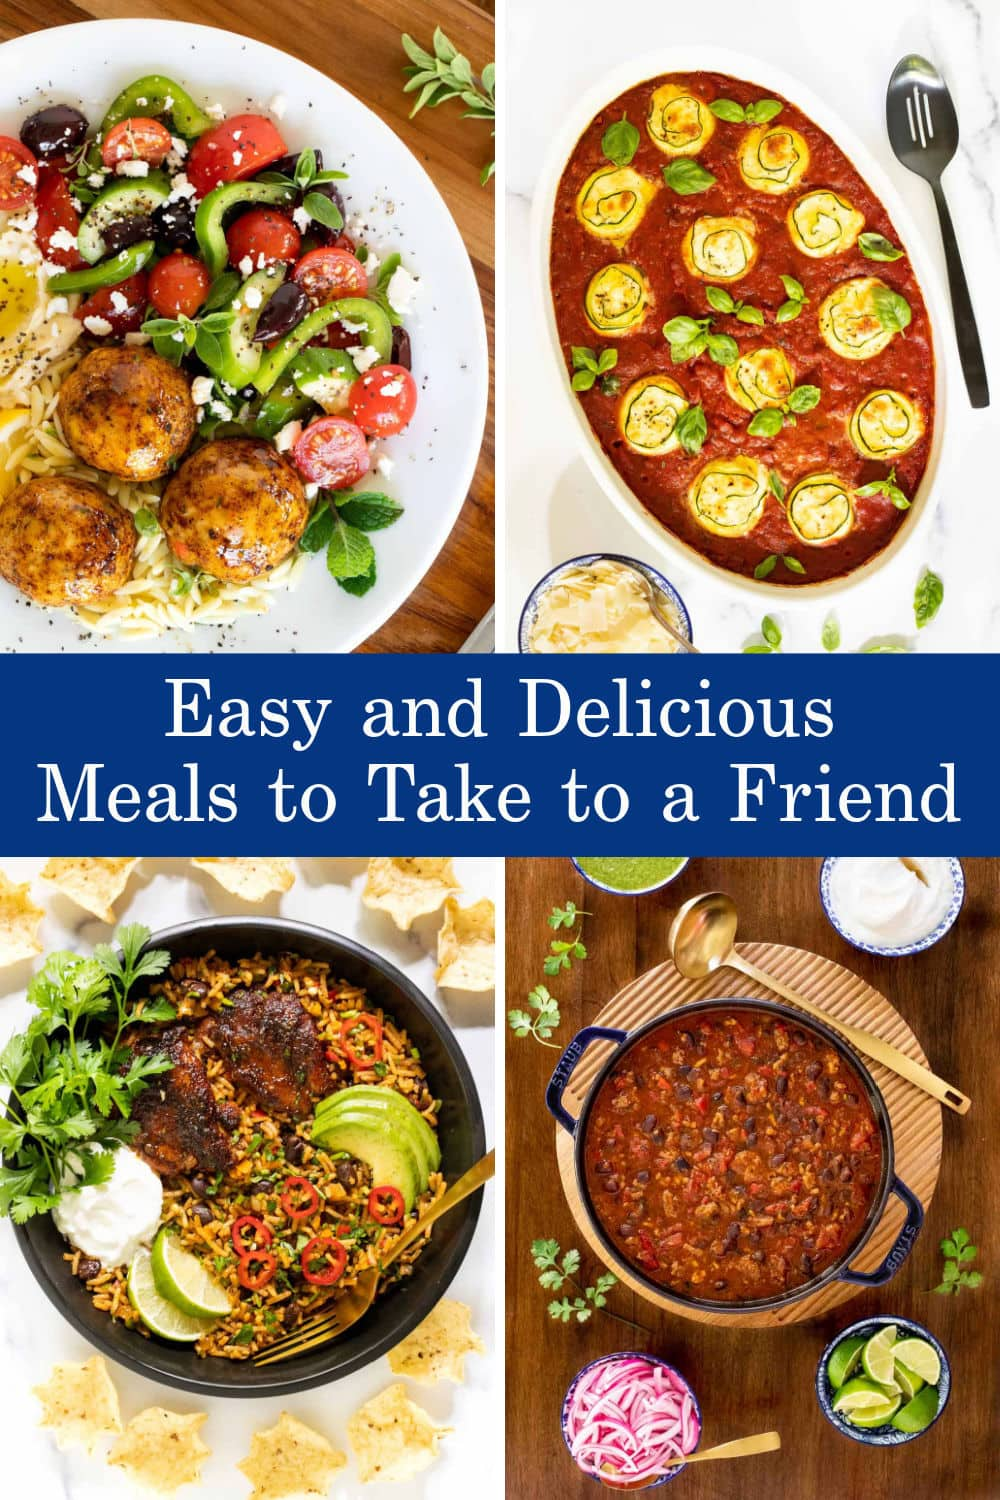 A Friend in Need... Easy, Delicious Meals to Share